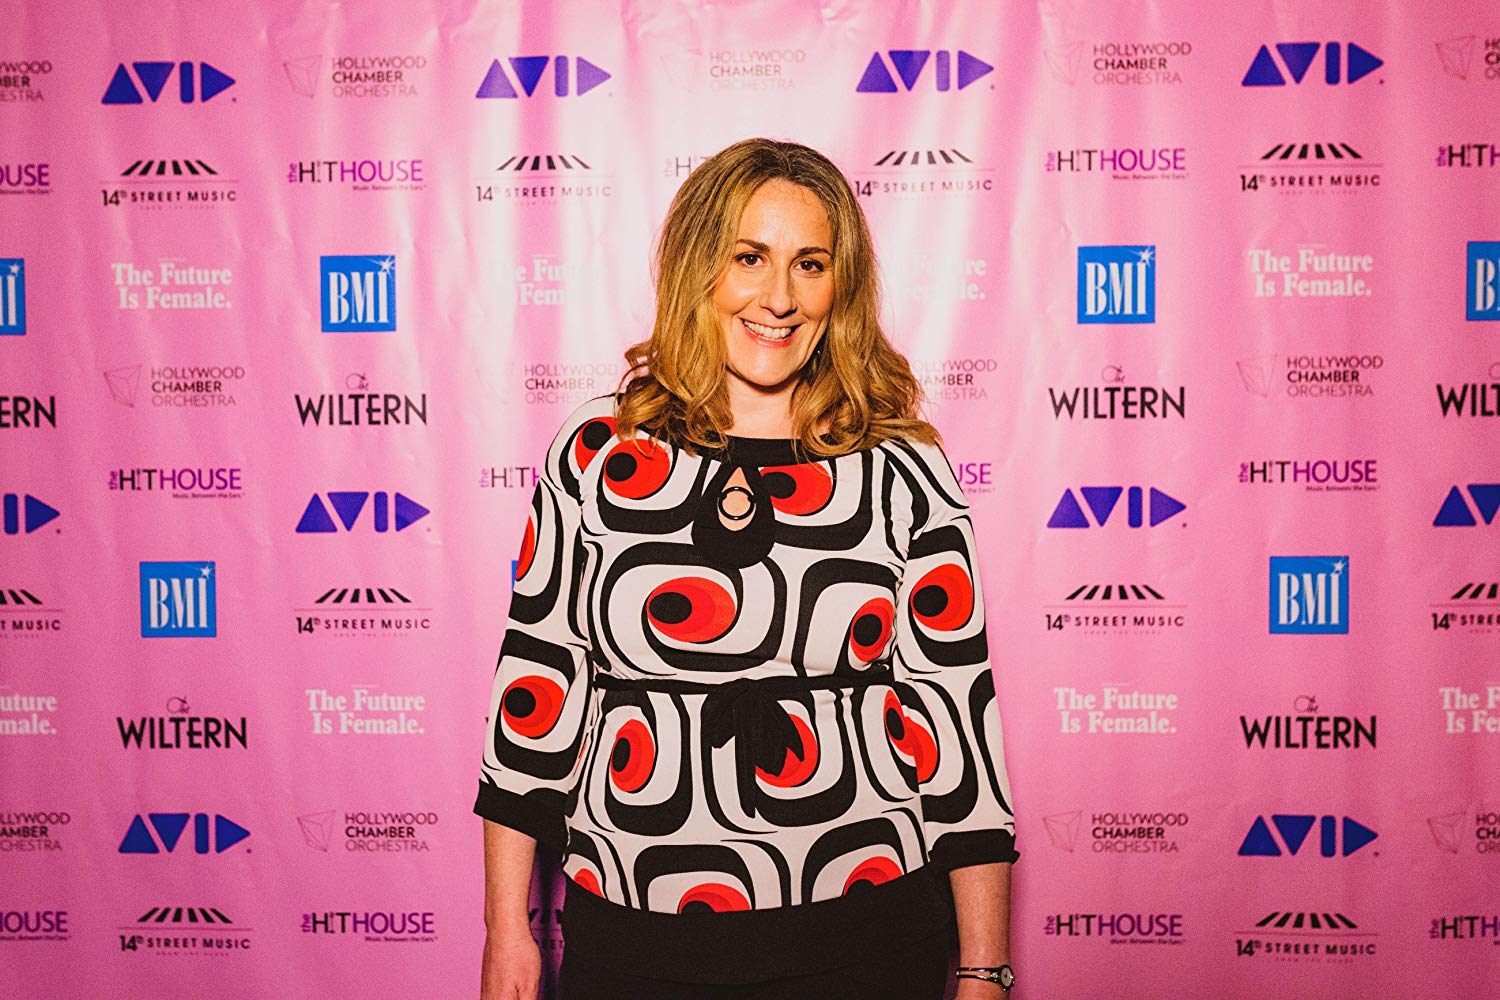 Ronit Kirchman on the red carpet for The Future is Female concert at the Wiltern in 2018.